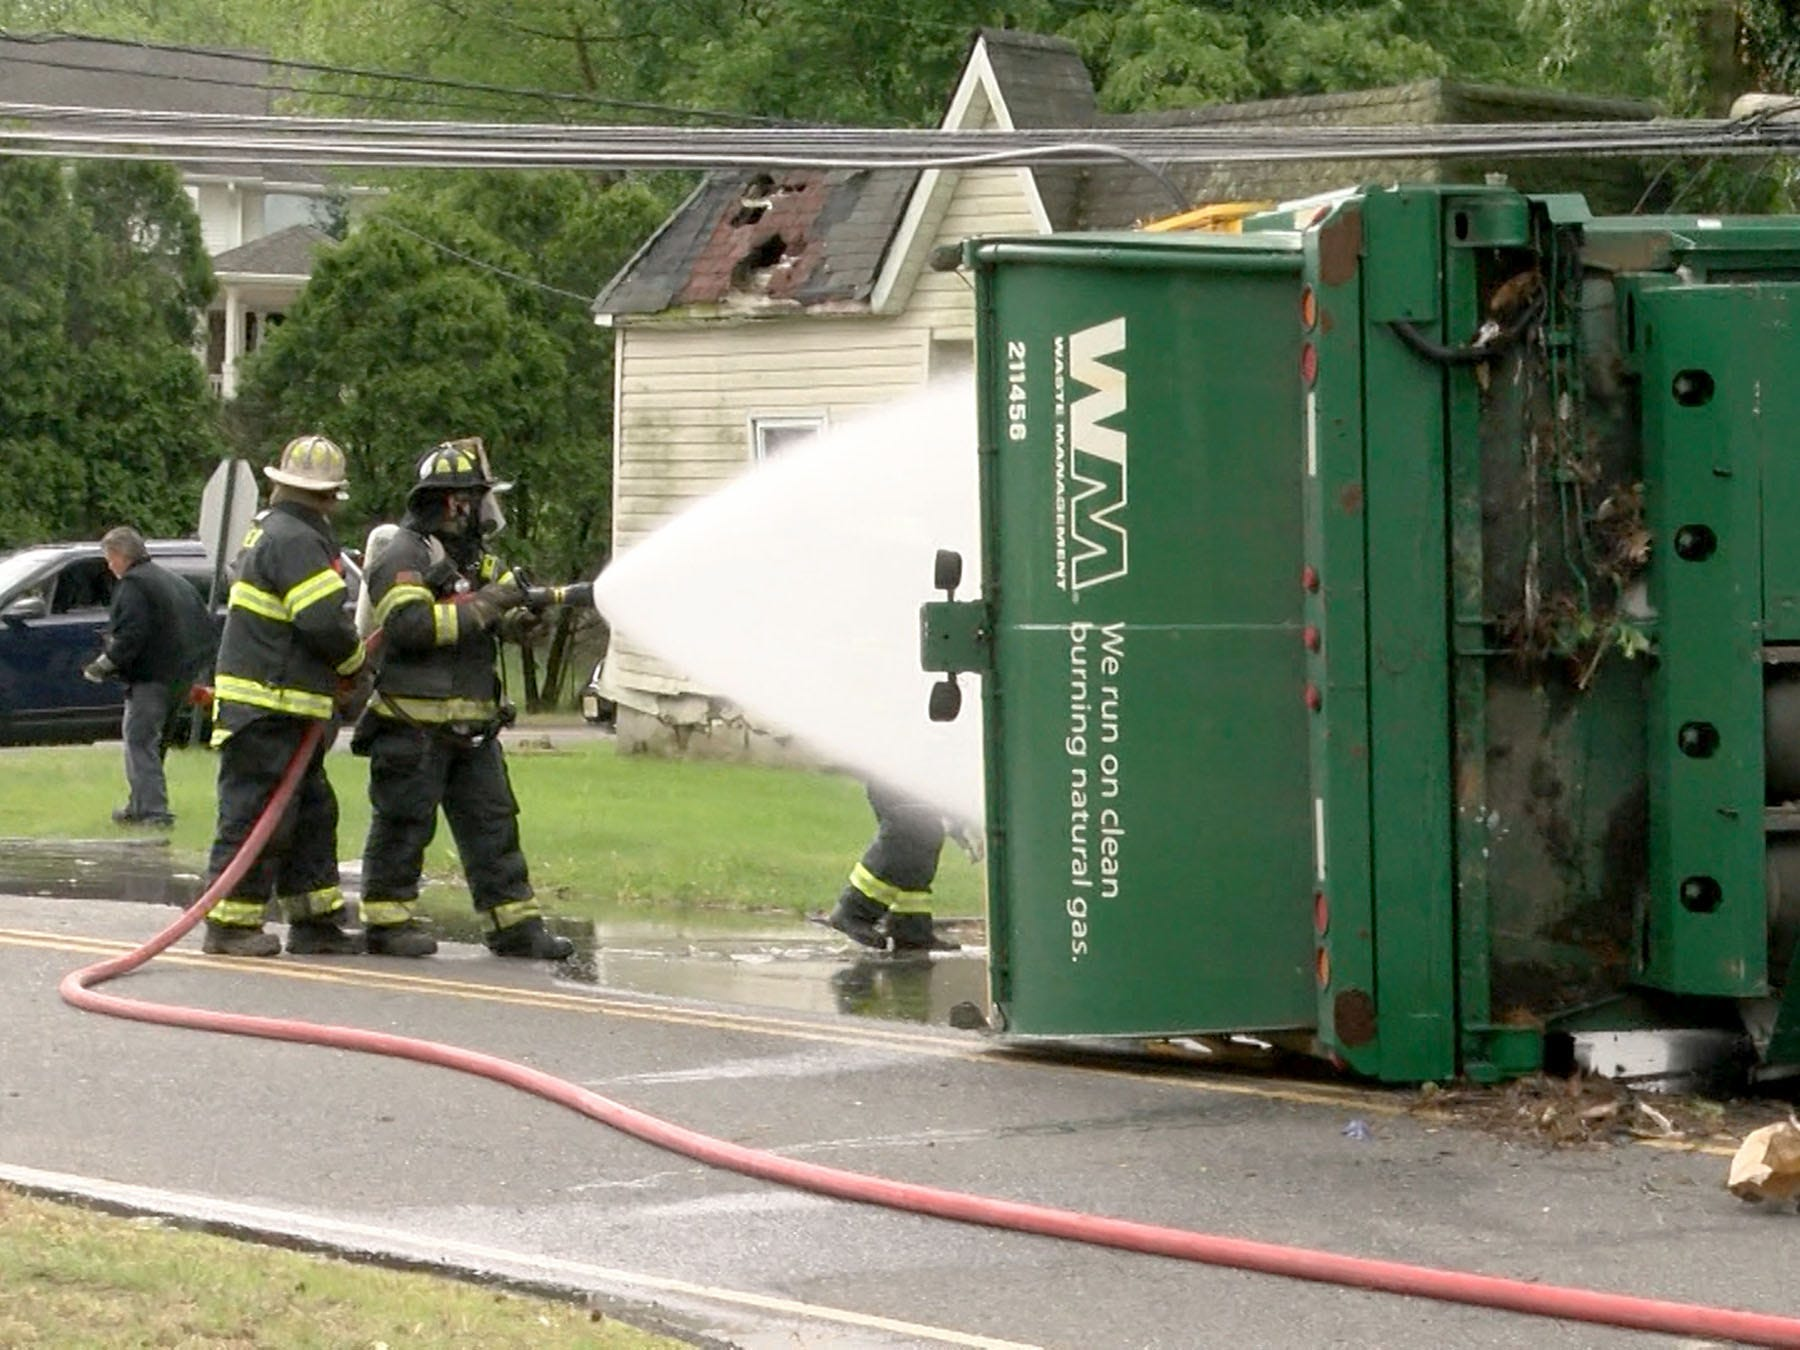 Howell Township firefighters keep an overtuned Waste Management garbage truck cool on West Farms Road at Casino Drive in the Township Tuesday morning, May 14, 2019.  At least two people were injured in the collison that spilled garbage on the roadway and cracked a poer pole.